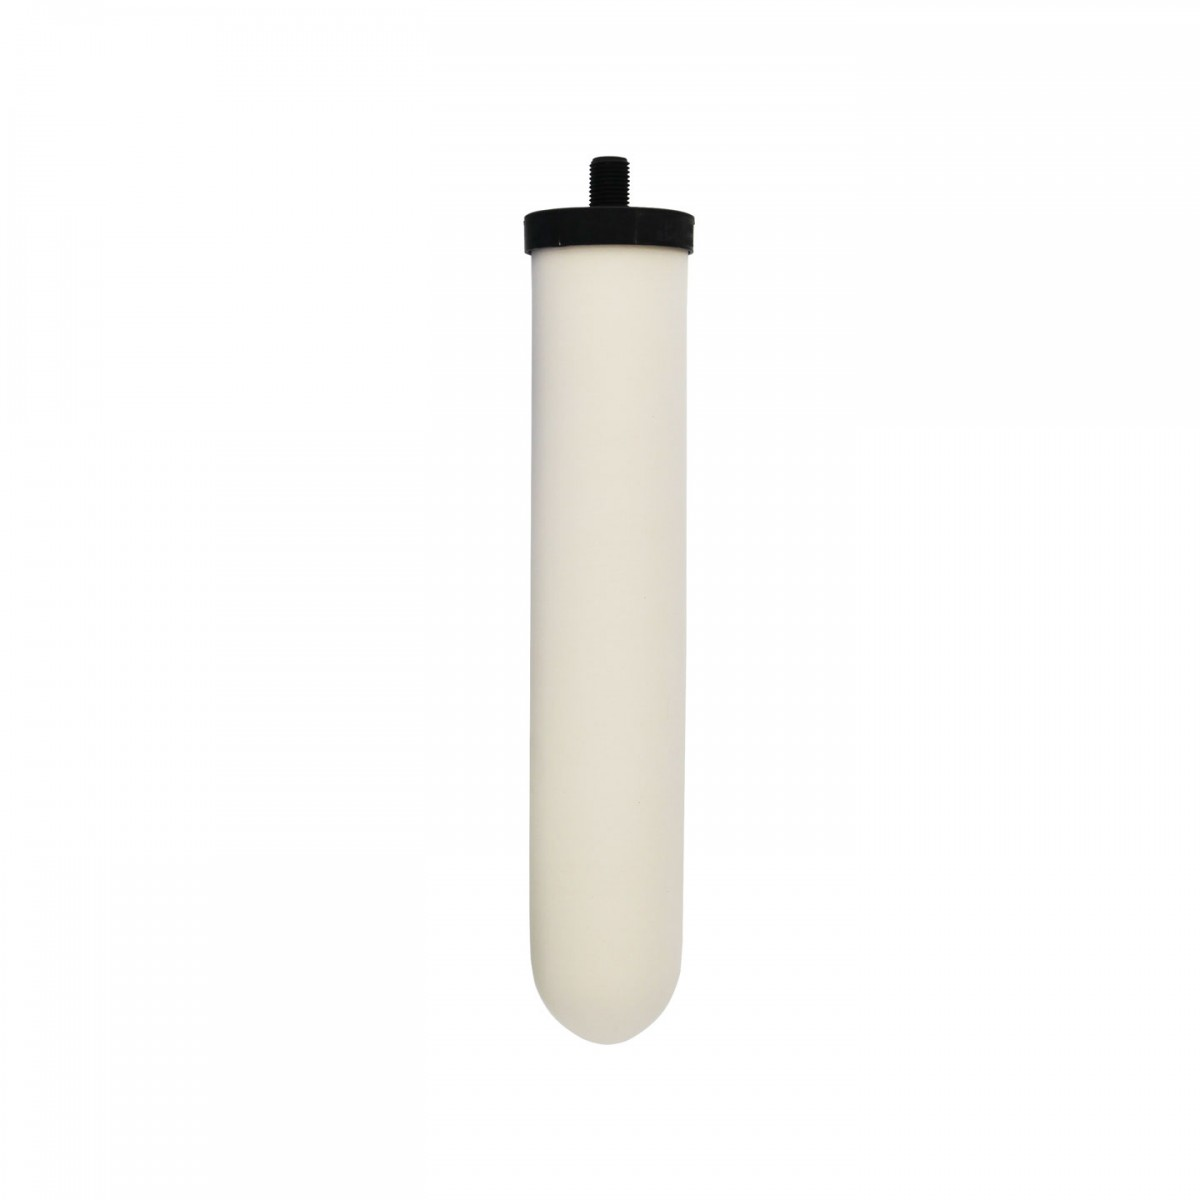 W9124020 Doulton Chlorasyl Water Filter Candle